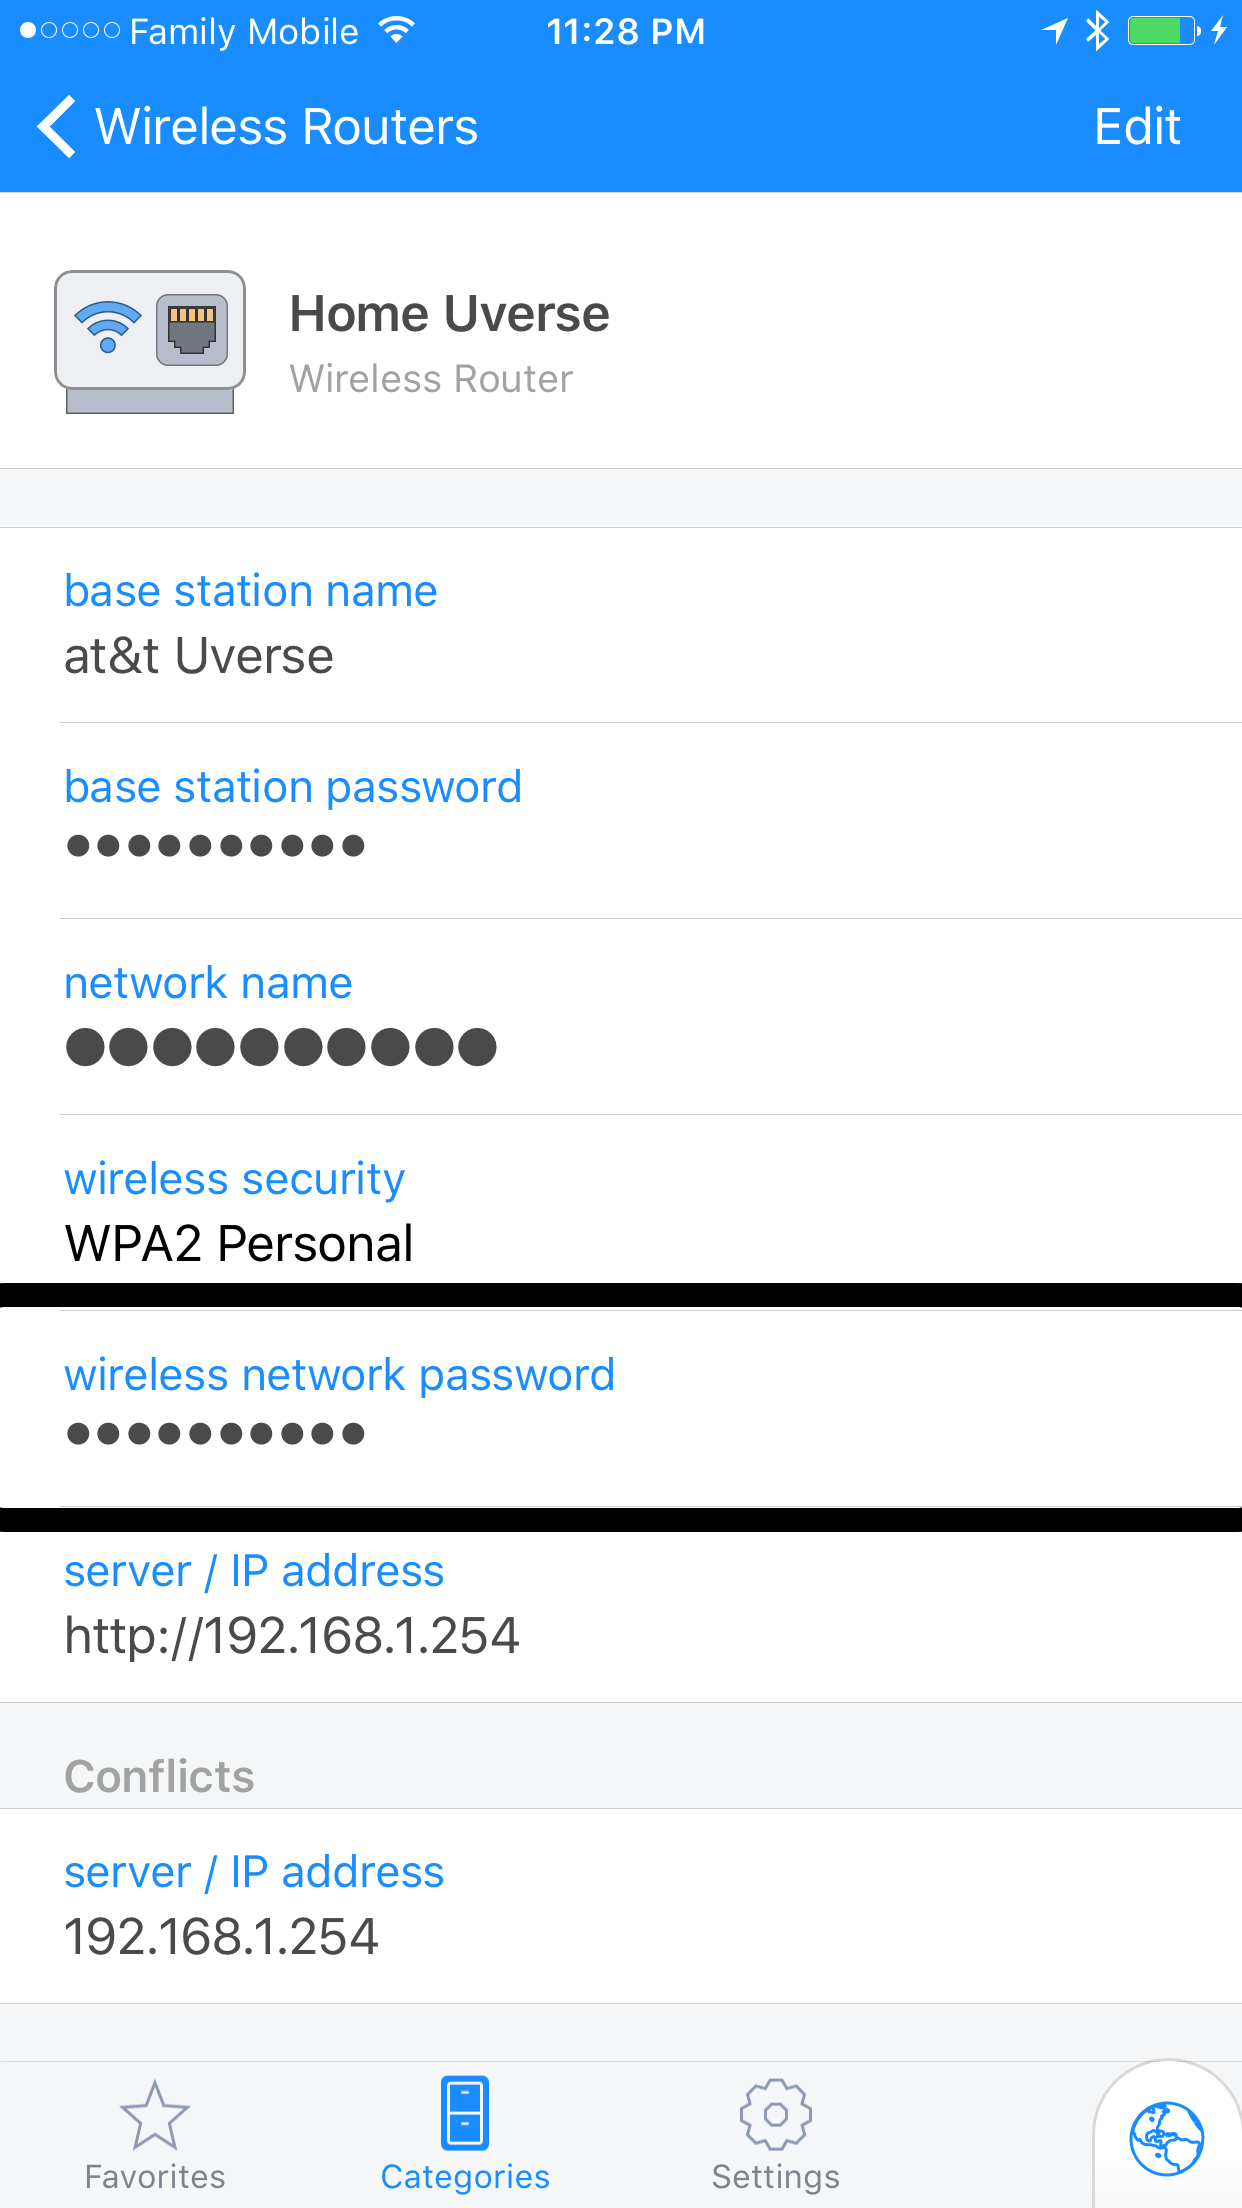 Shows a wireless network entry with some detail filled in